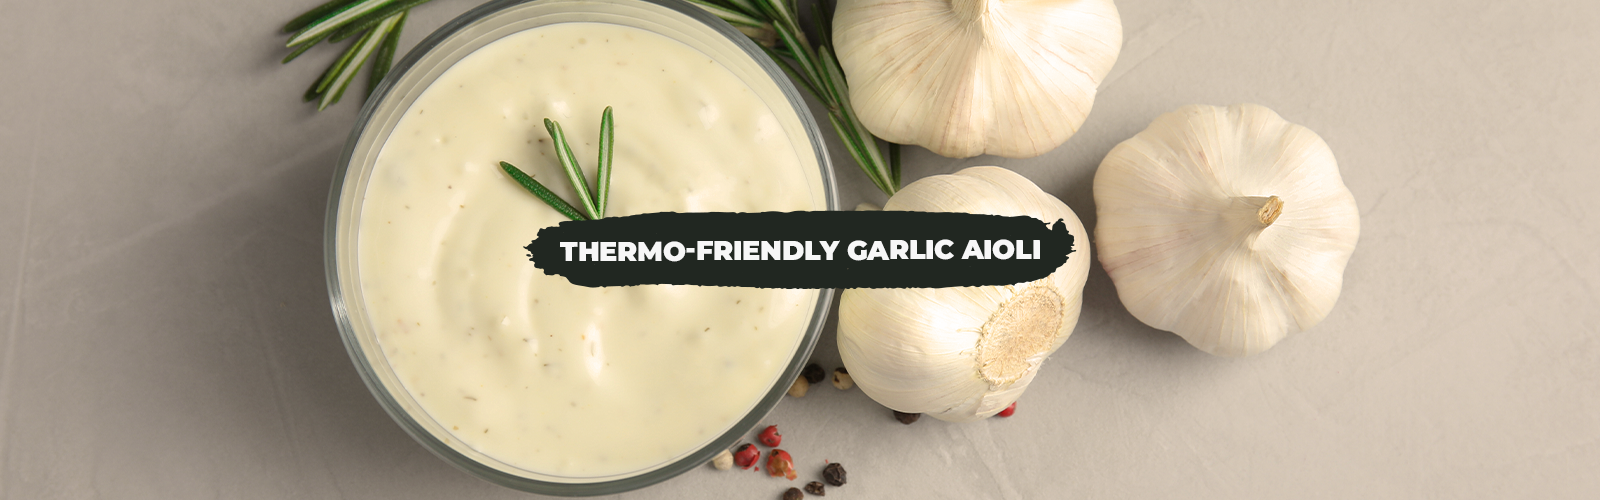 Thermo-Friendly Garlic Aioli